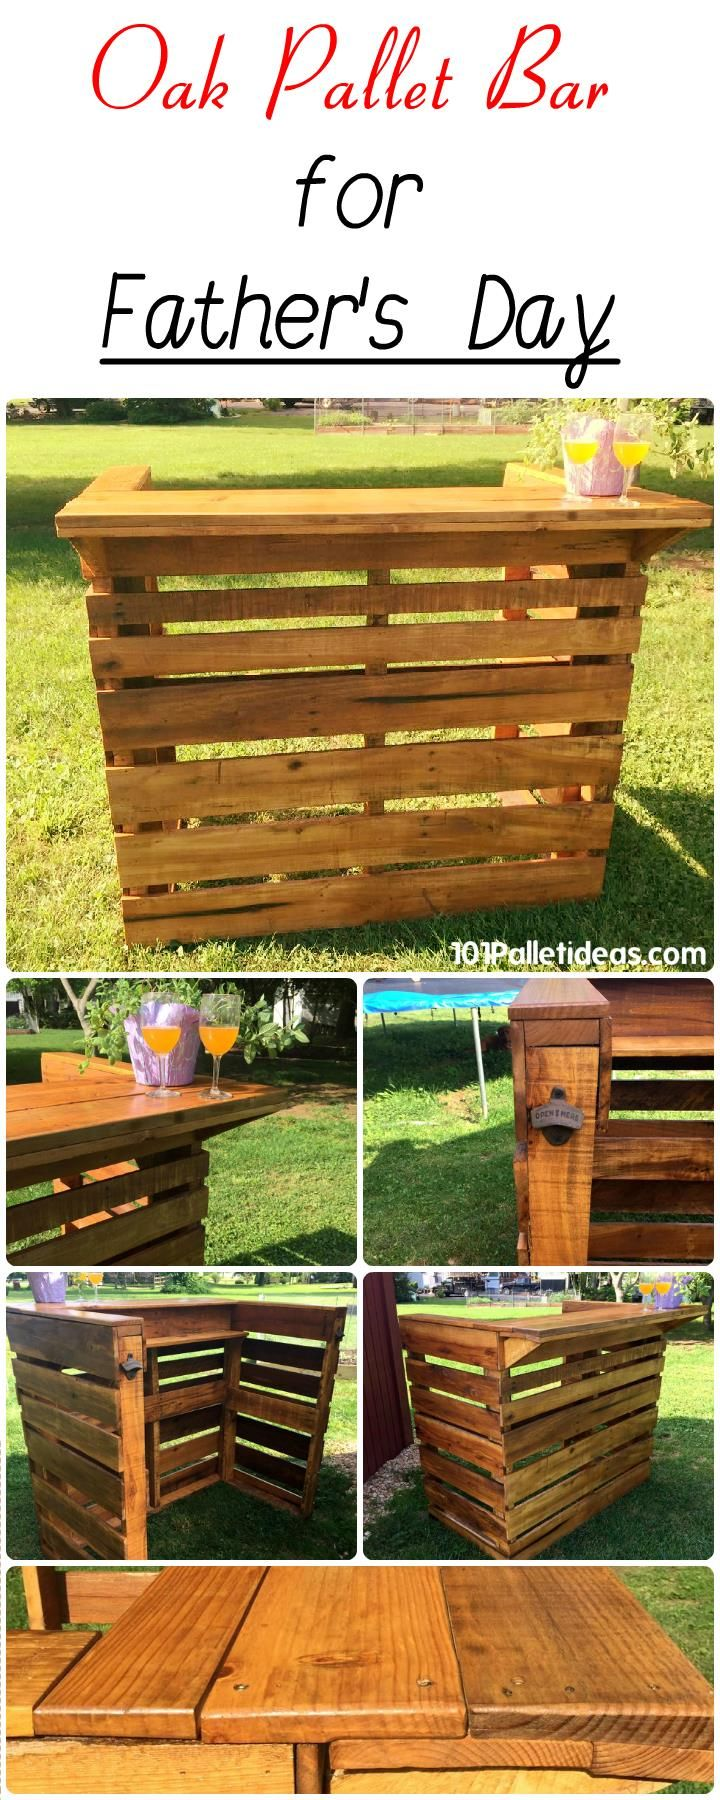 Oak-Pallet-Bar-for-Fathers-Day-Gift-for-Father.jpg 720×1800 pixels